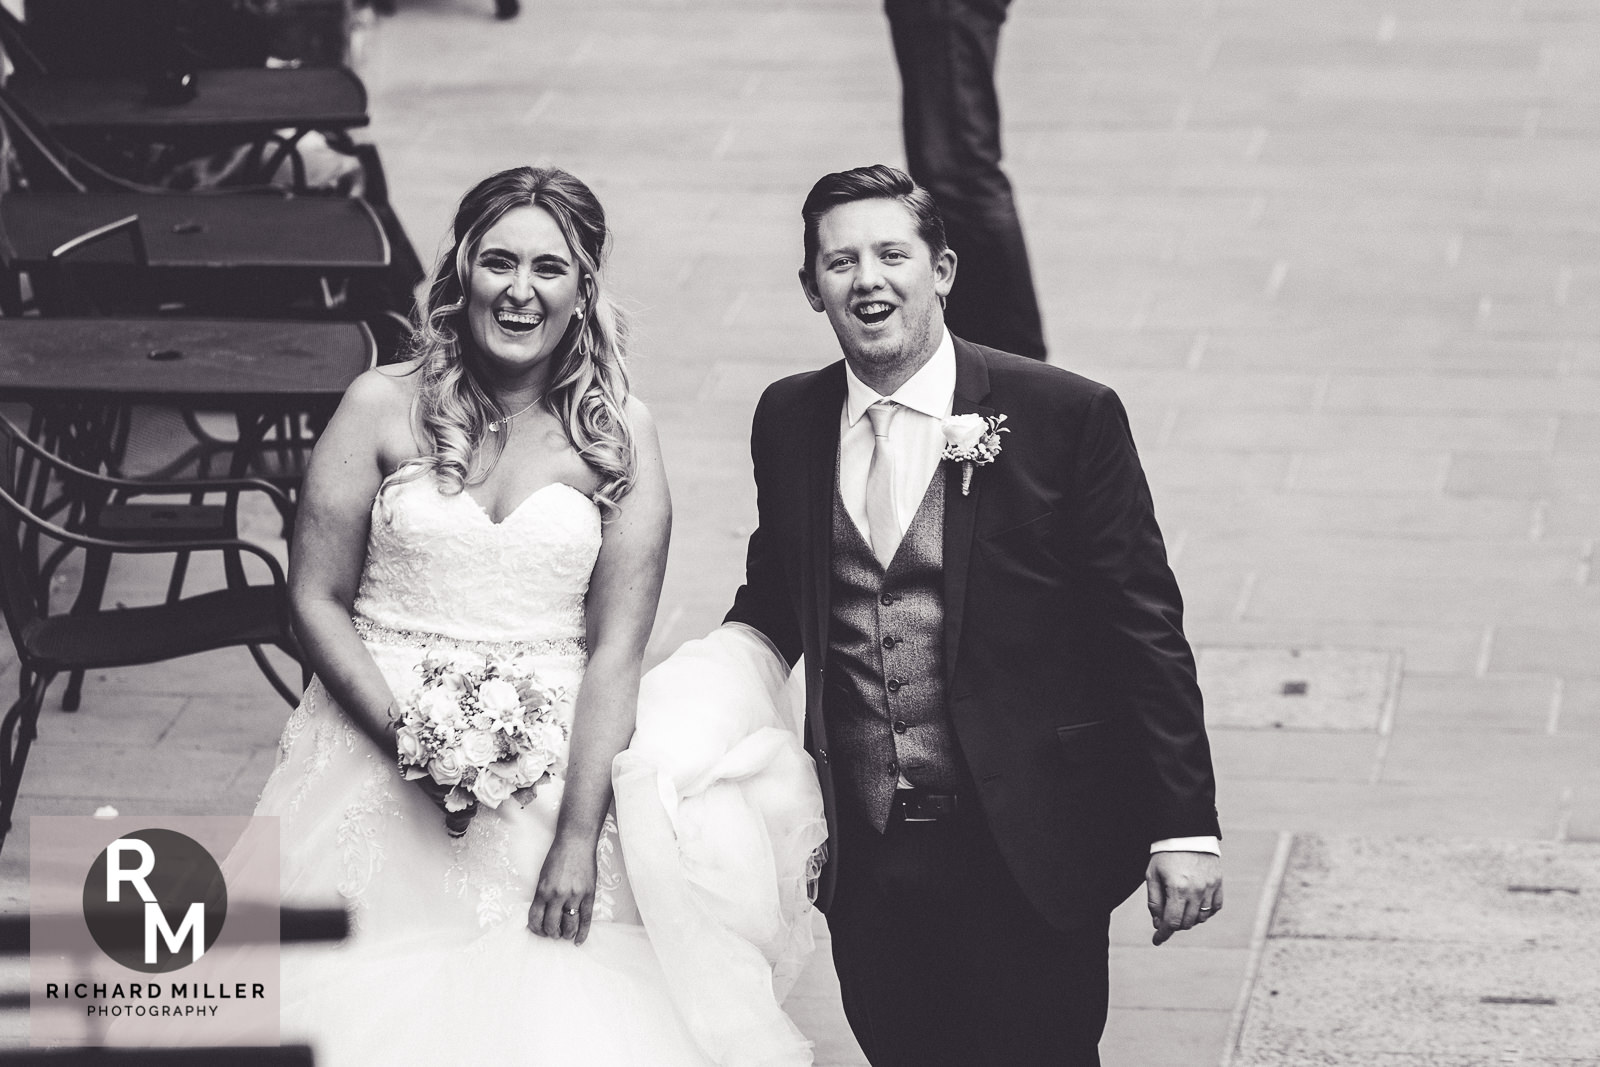 Dale Natalie Web 414 - An Awesome Chester Wedding at Oddfellows